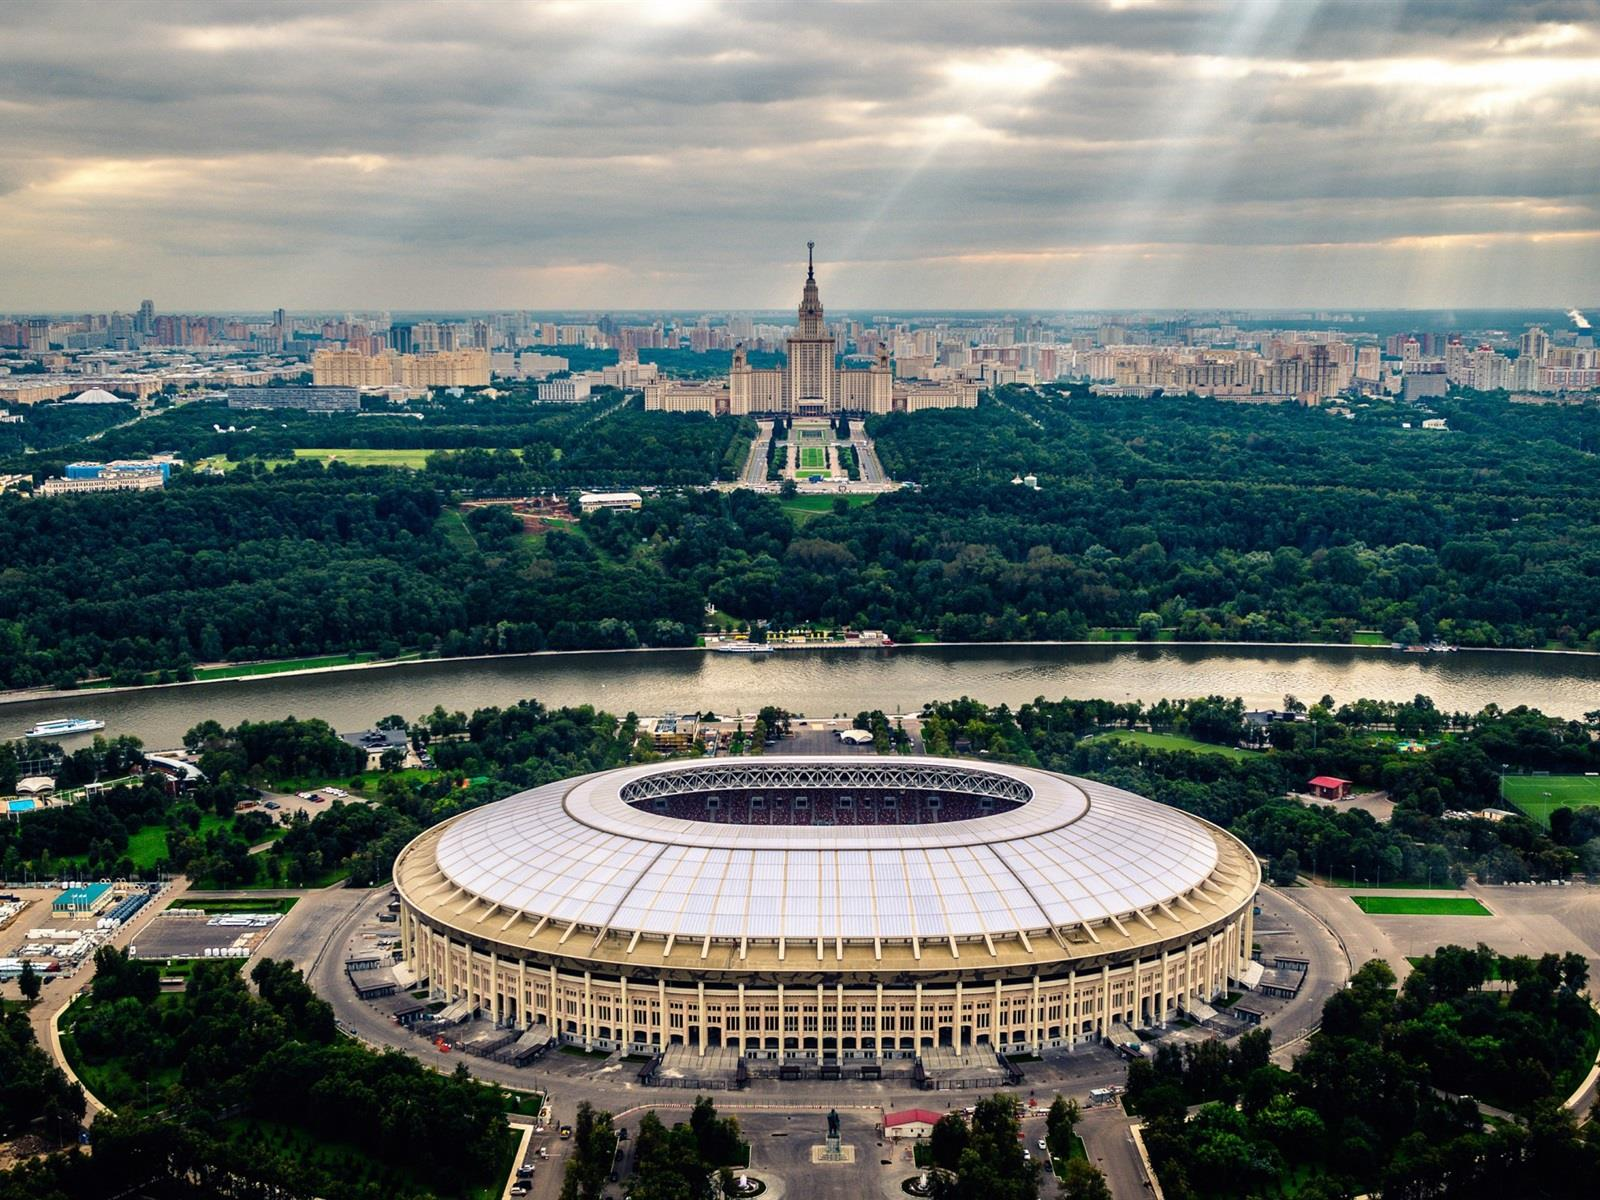 Luzhnikí Olympic Stadium Tour with Panoramic View